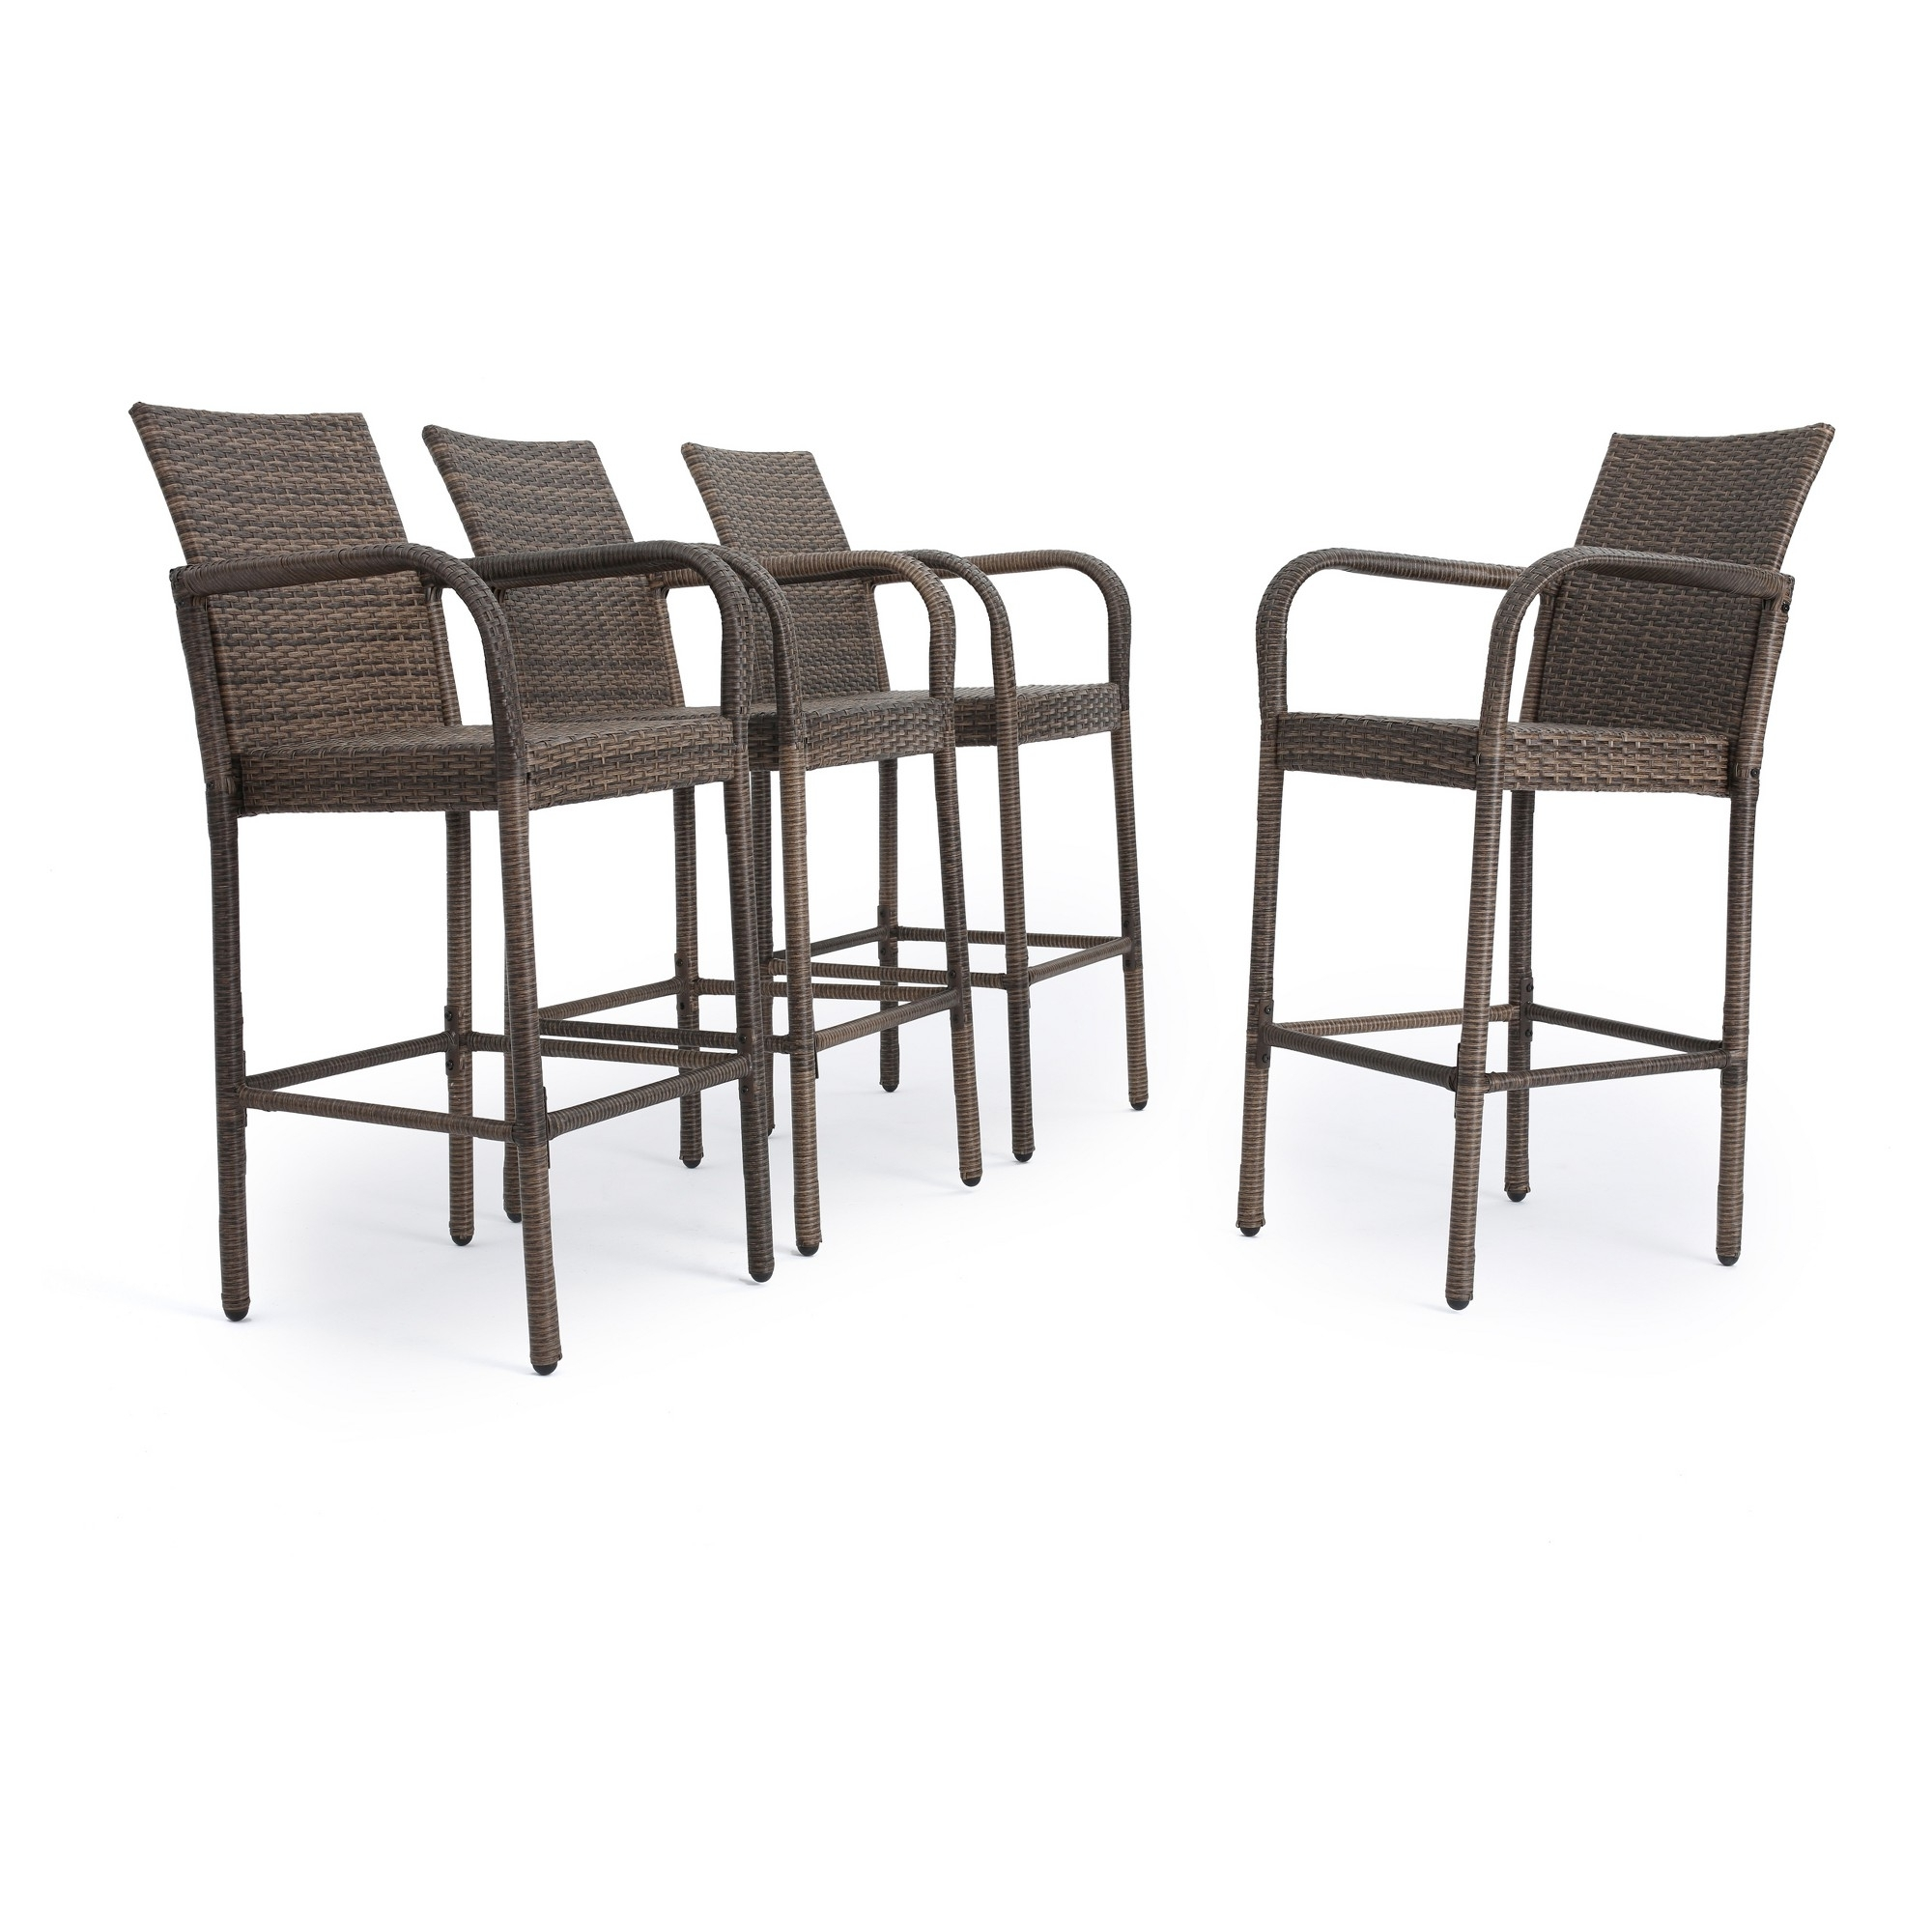 Famous Delfina Dining Tables Throughout Delfina Set Of 4 Wicker Barstool – Mix Mocha – Christopher Knight (View 16 of 25)